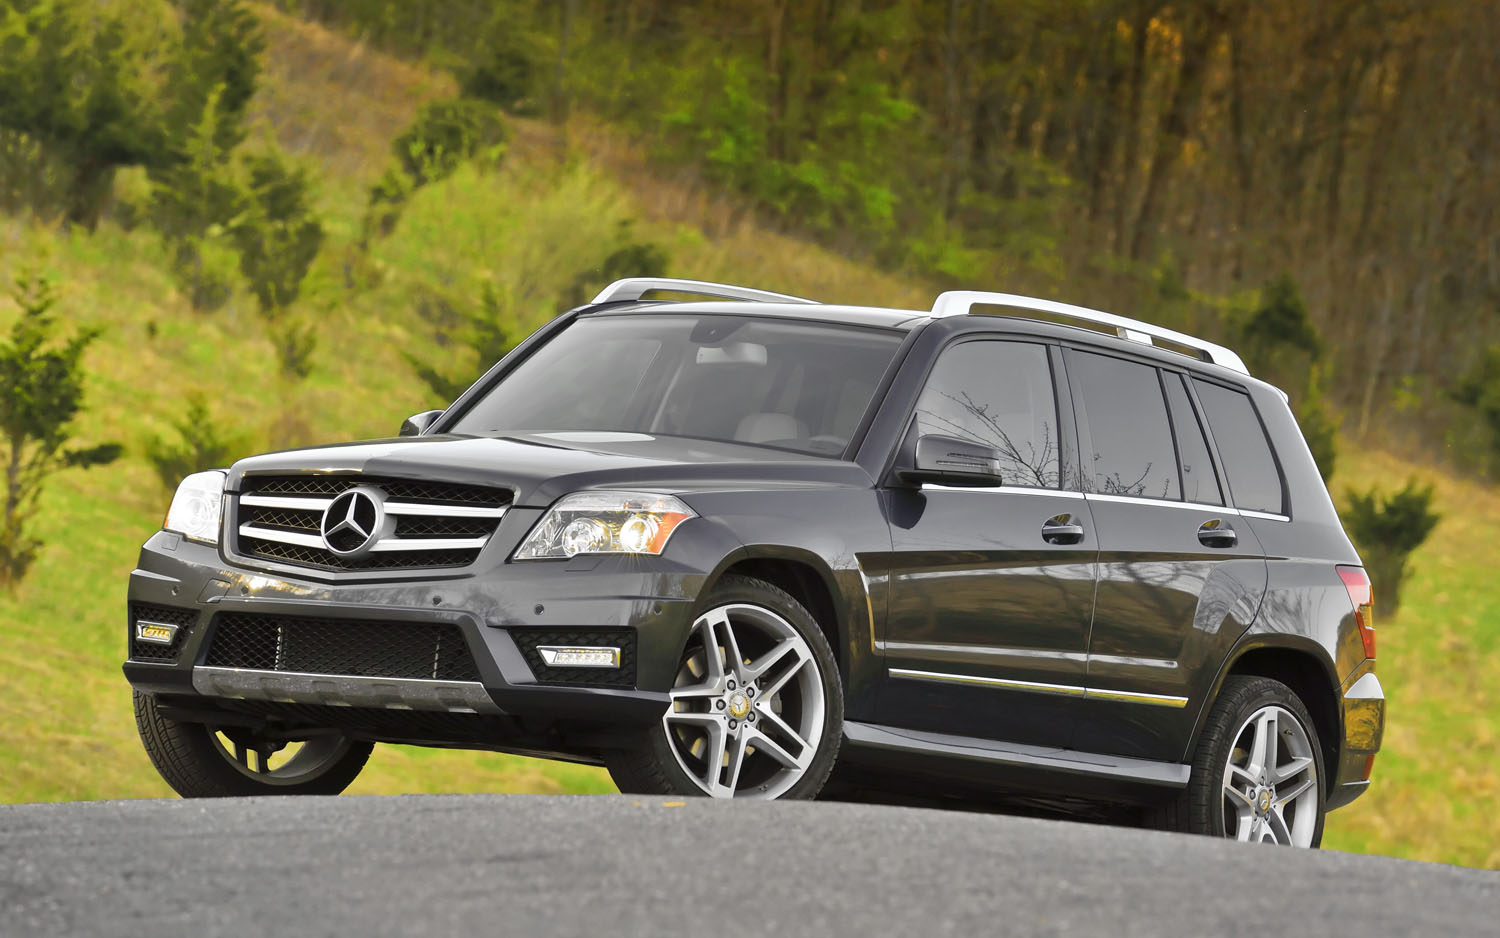 2011 Mercedes Benz GLK Front Three Quarter1